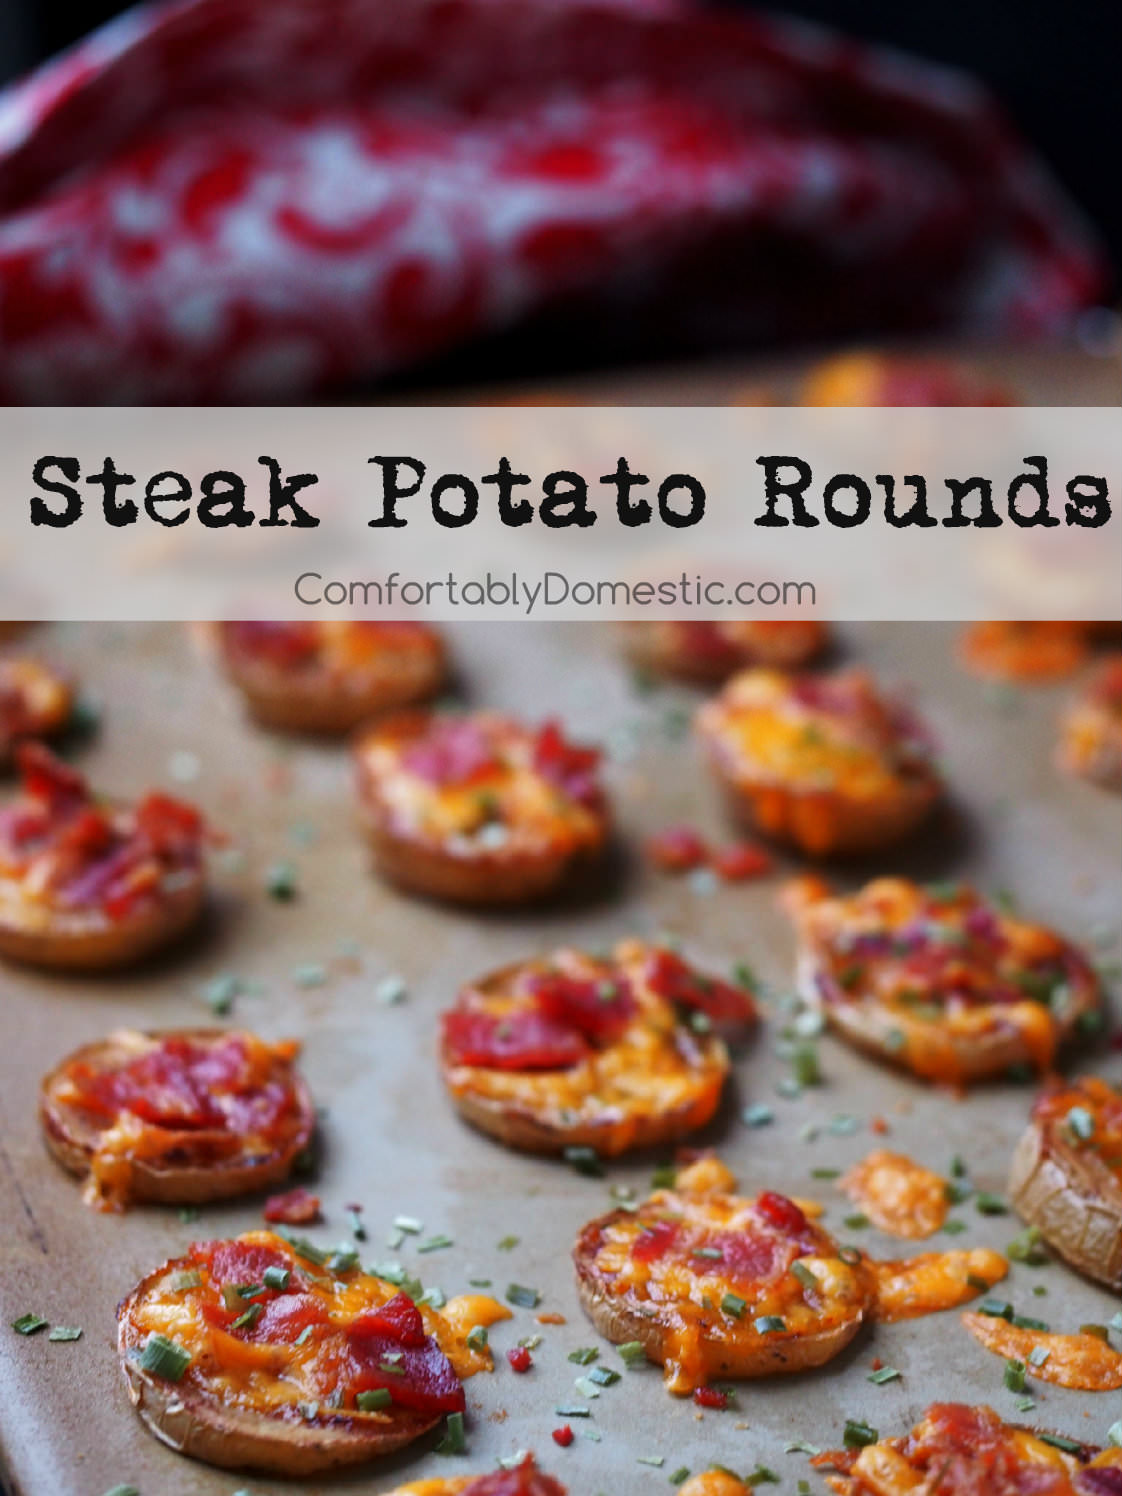 Steak potato rounds have the taste of a loaded baked potato in a two-bite appetizer. Bake sliced yellow potato rounds to tender perfection, then smother them with steak sauce, aged cheddar cheese, crisp bacon, and chives.  | ComfortablyDomestic.com